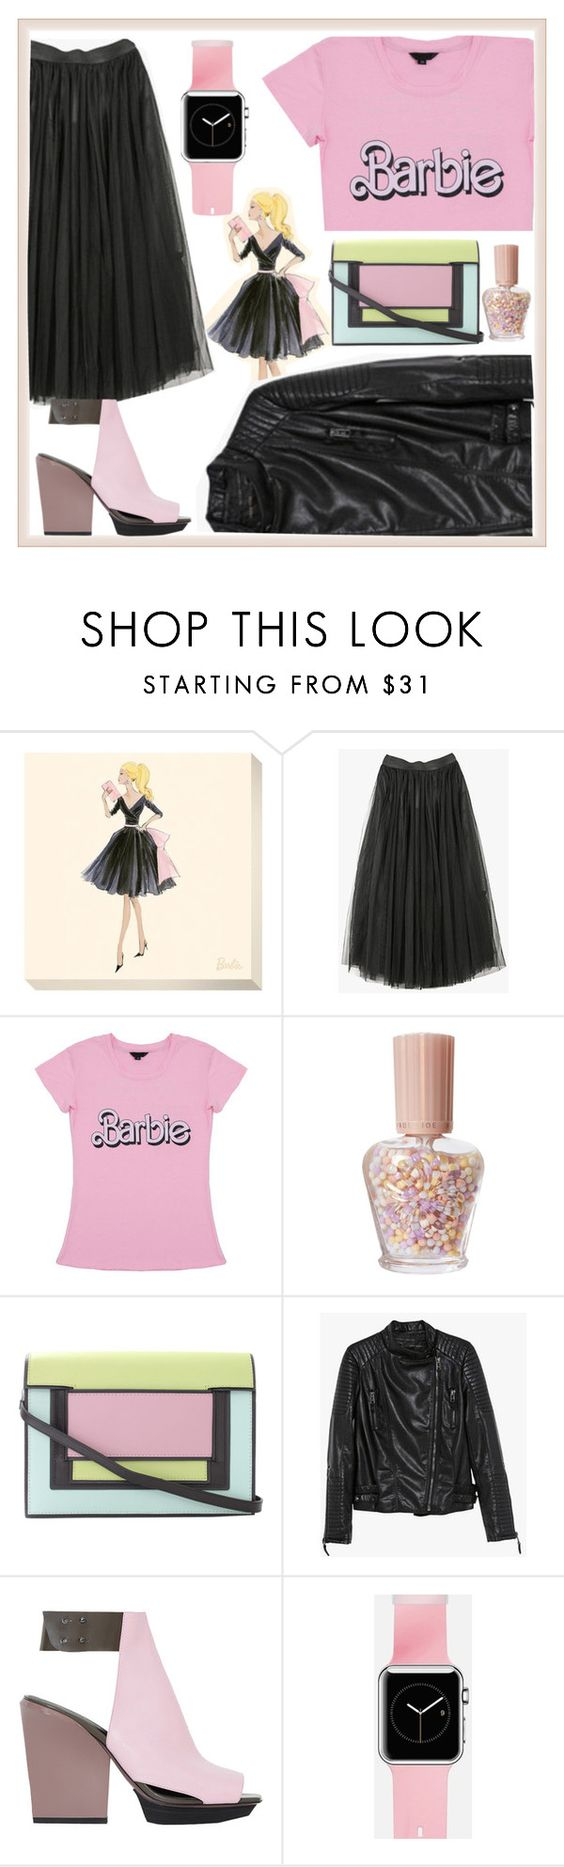 """Barbie Girl"" by amistric ❤ liked on Polyvore featuring Paul & Joe, Pierre Hardy, 3.1 Phillip Lim, Casetify, Pink, Barbie, tulle and Bubblegumpink"